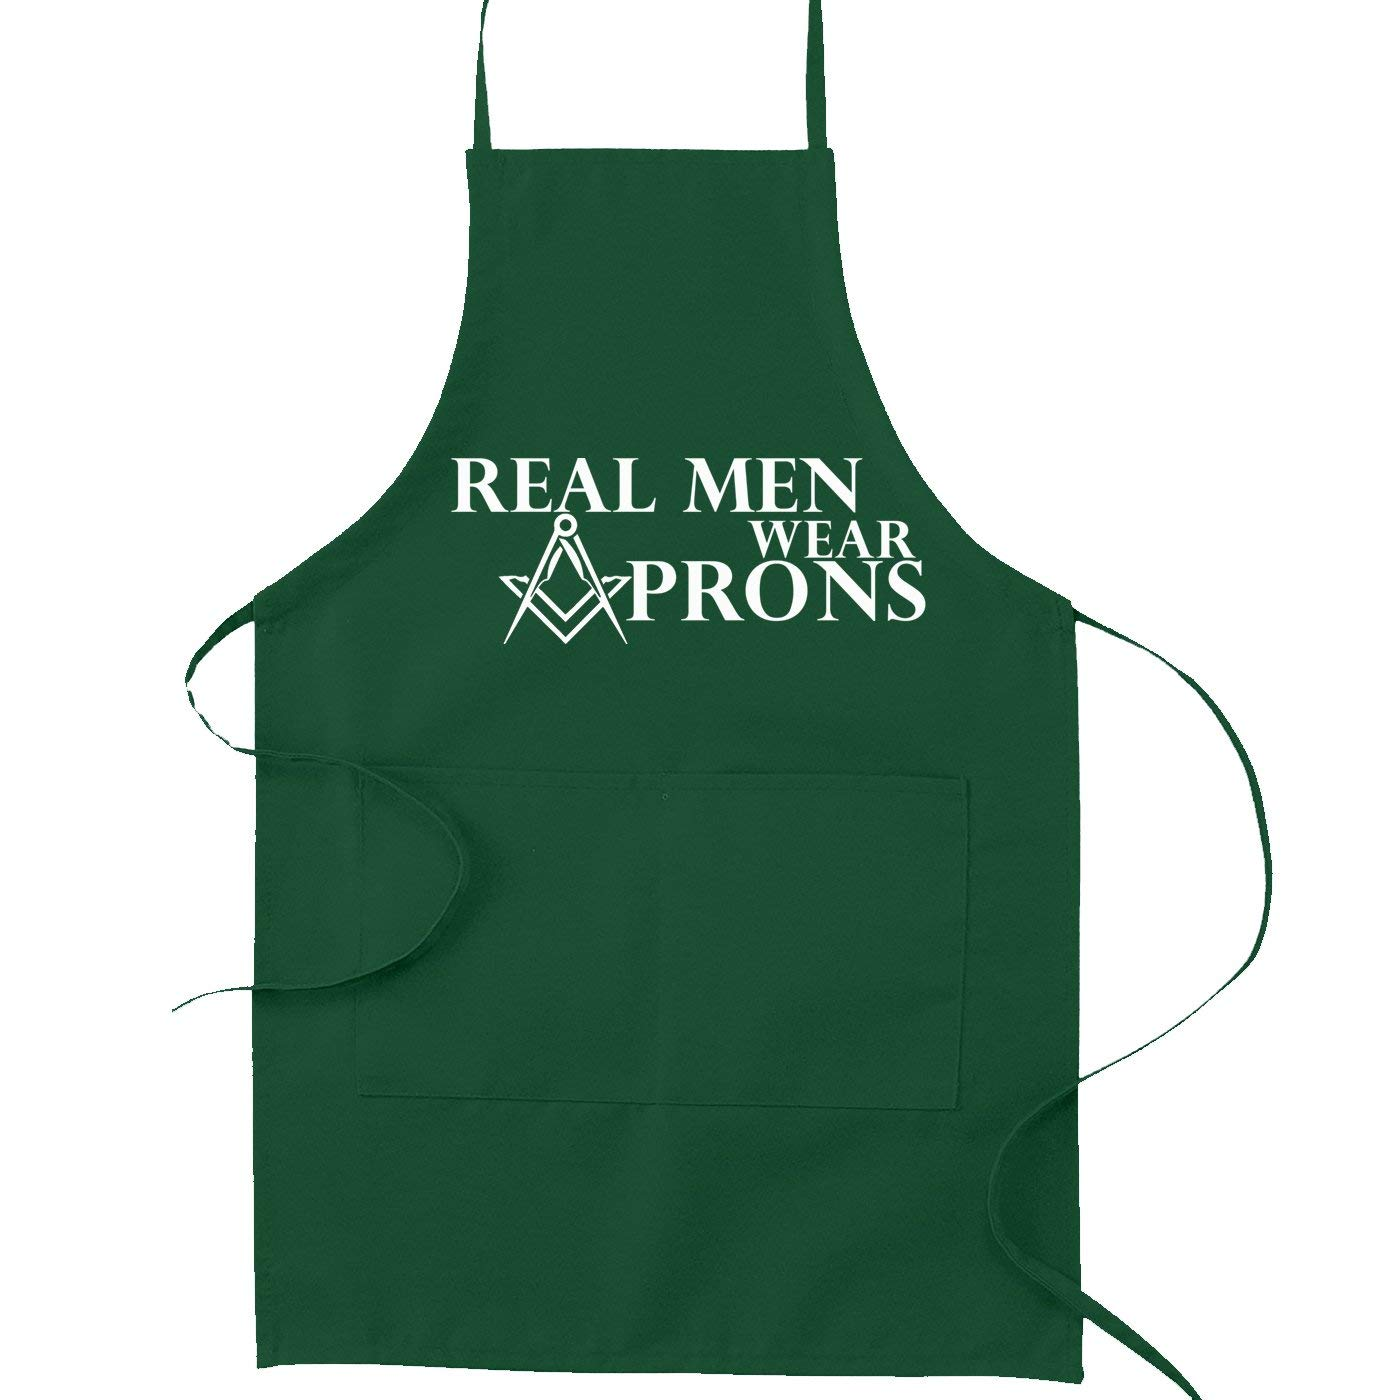 This could be your teams apron!